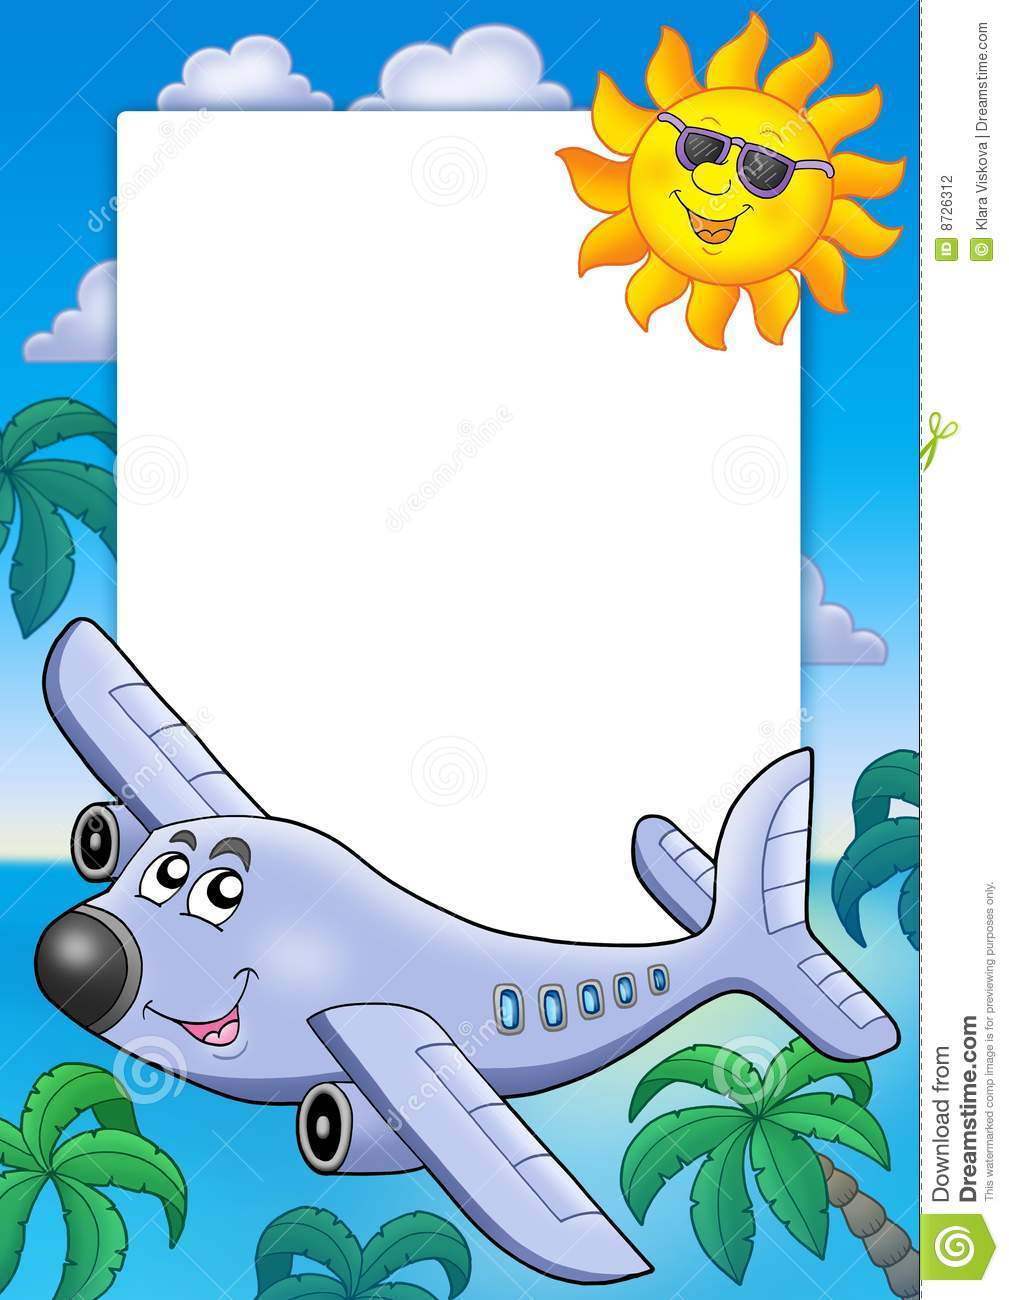 Frame With Sun And Airplane Stock Photography Image 8726312